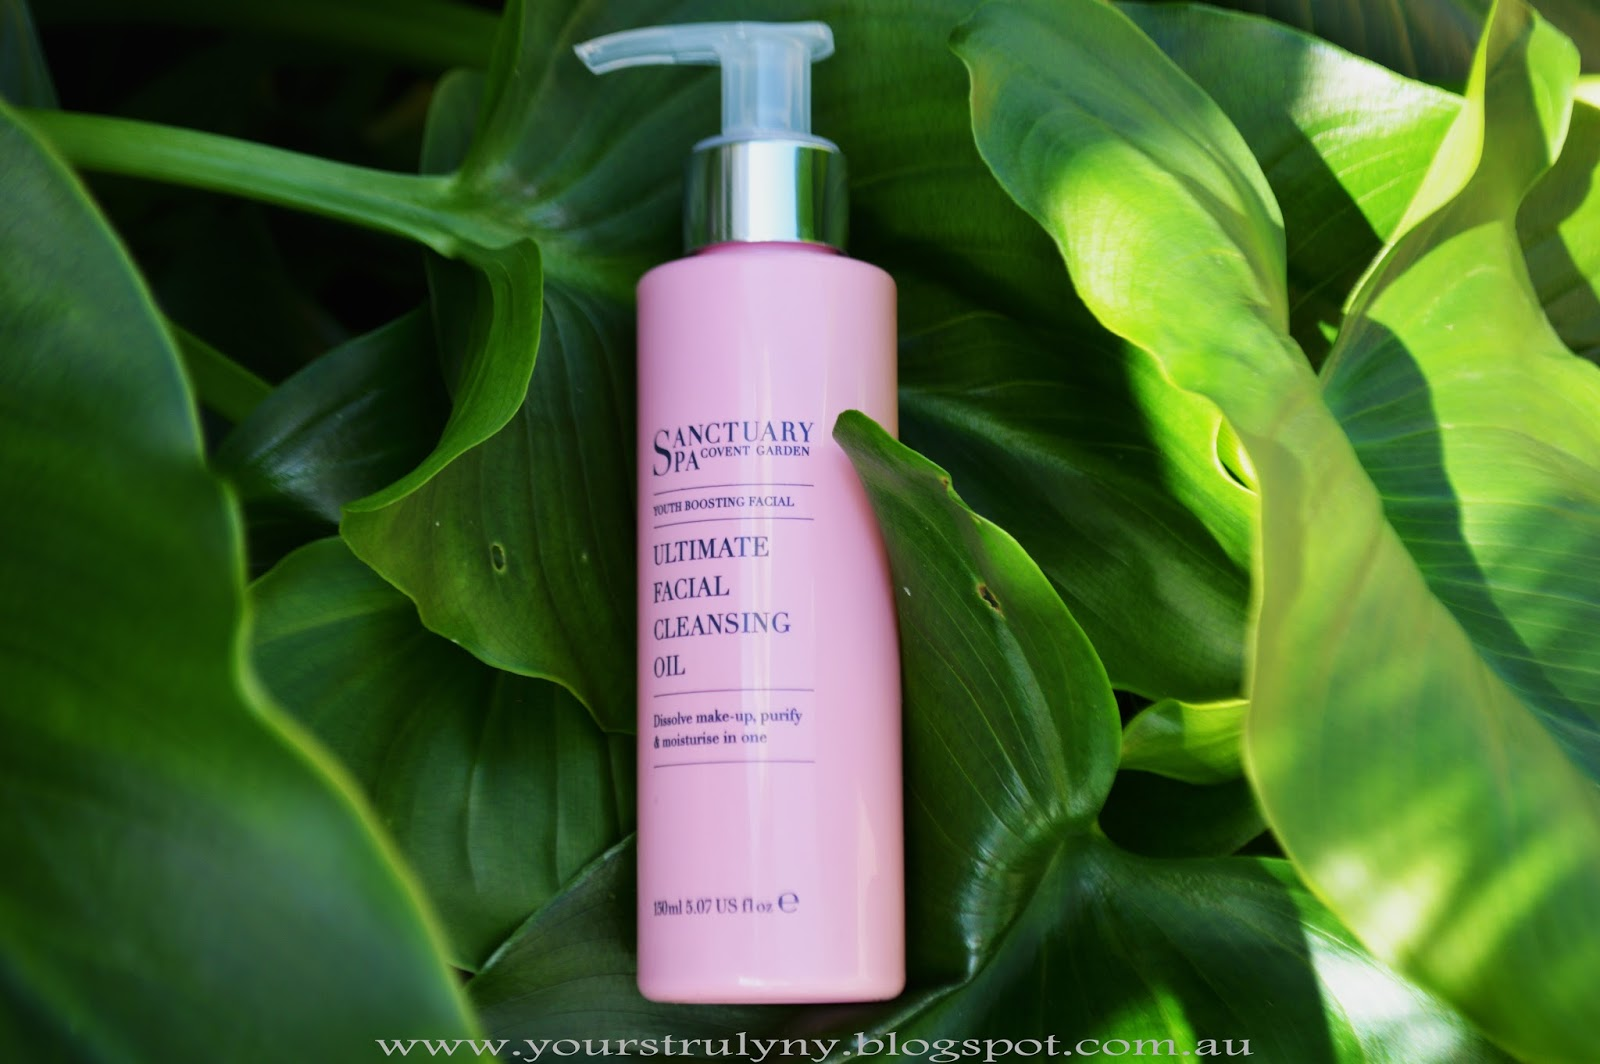 Sanctuary Spa Covent Garden Ultimate Facial Cleansing Oil